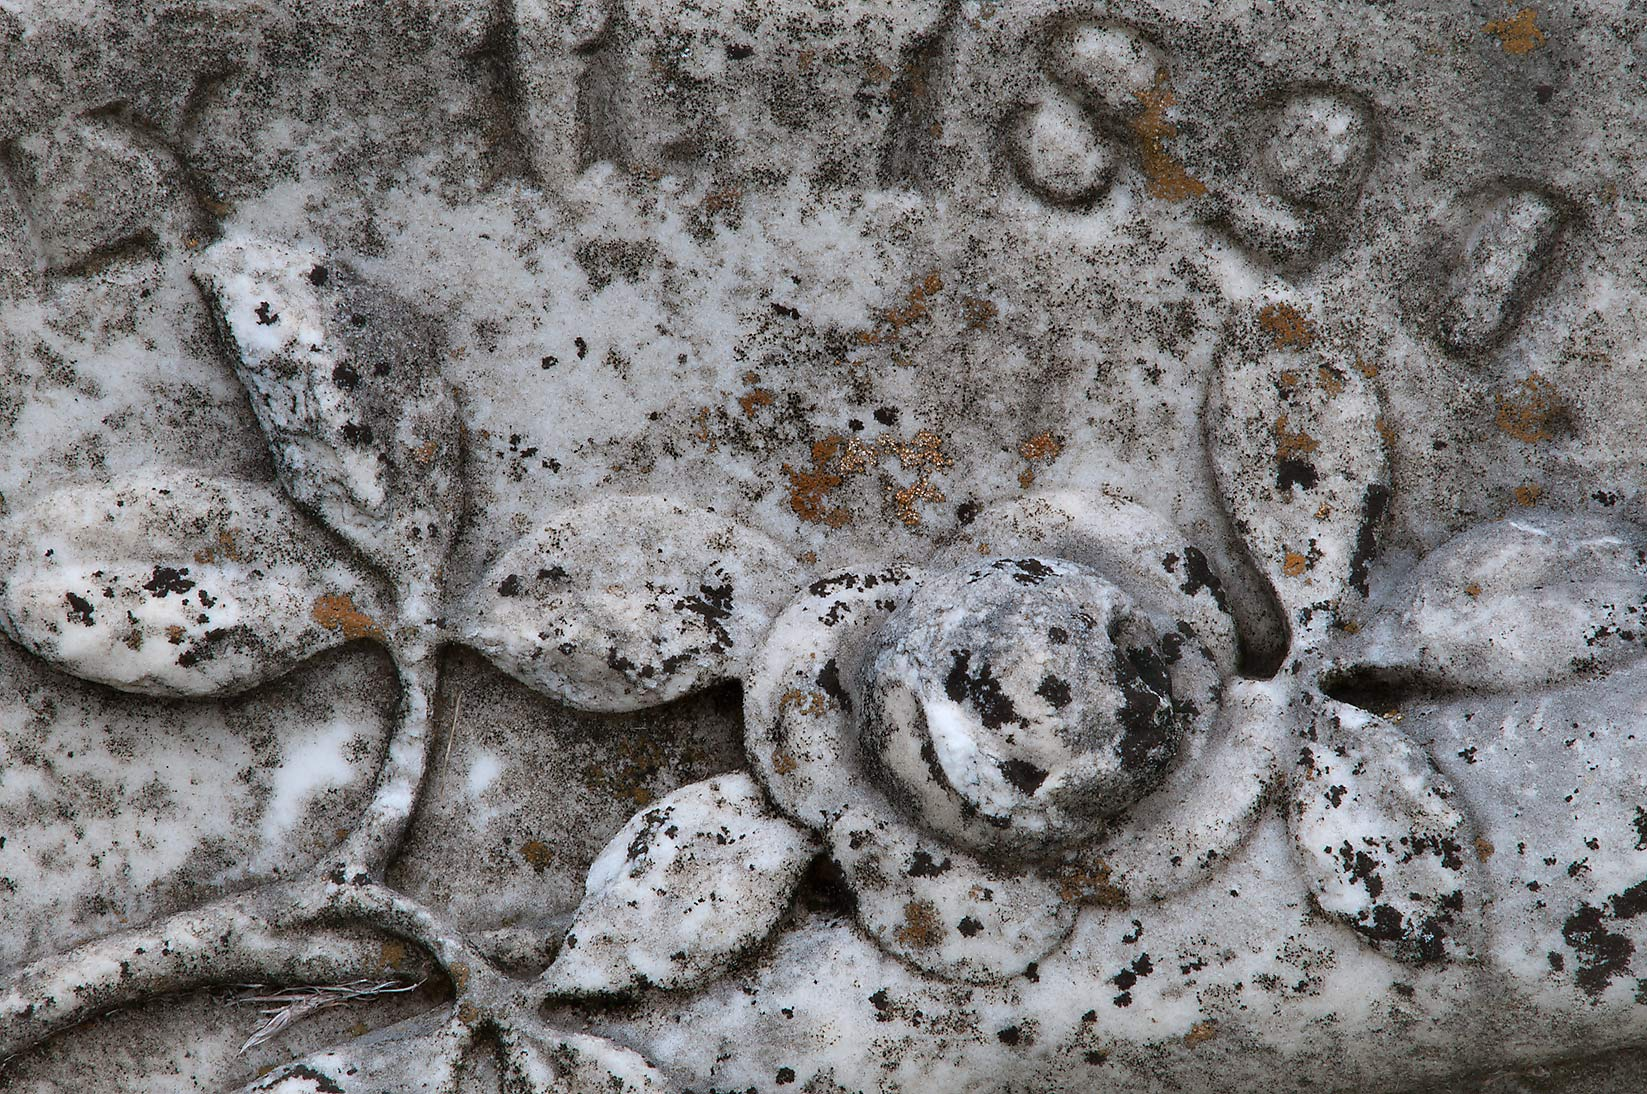 Lichens on stone roses in City Cemetery. Bryan, Texas